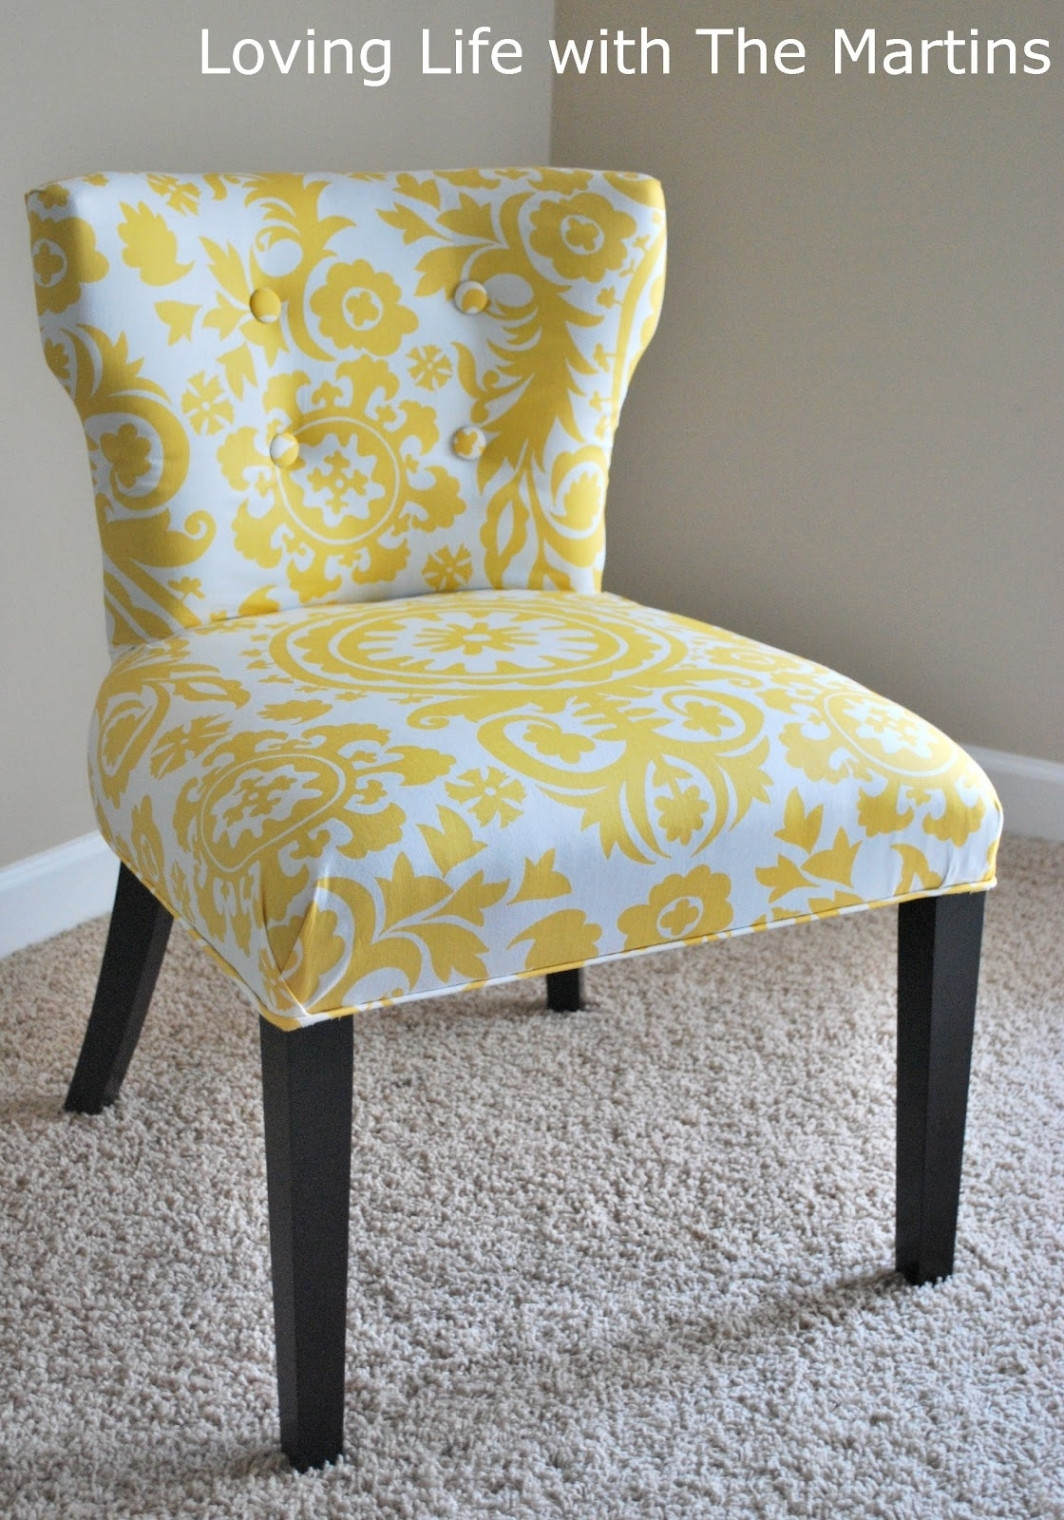 Best ideas about DIY Accent Chair . Save or Pin 20 Best Ideas of Diy Accent Chair Now.